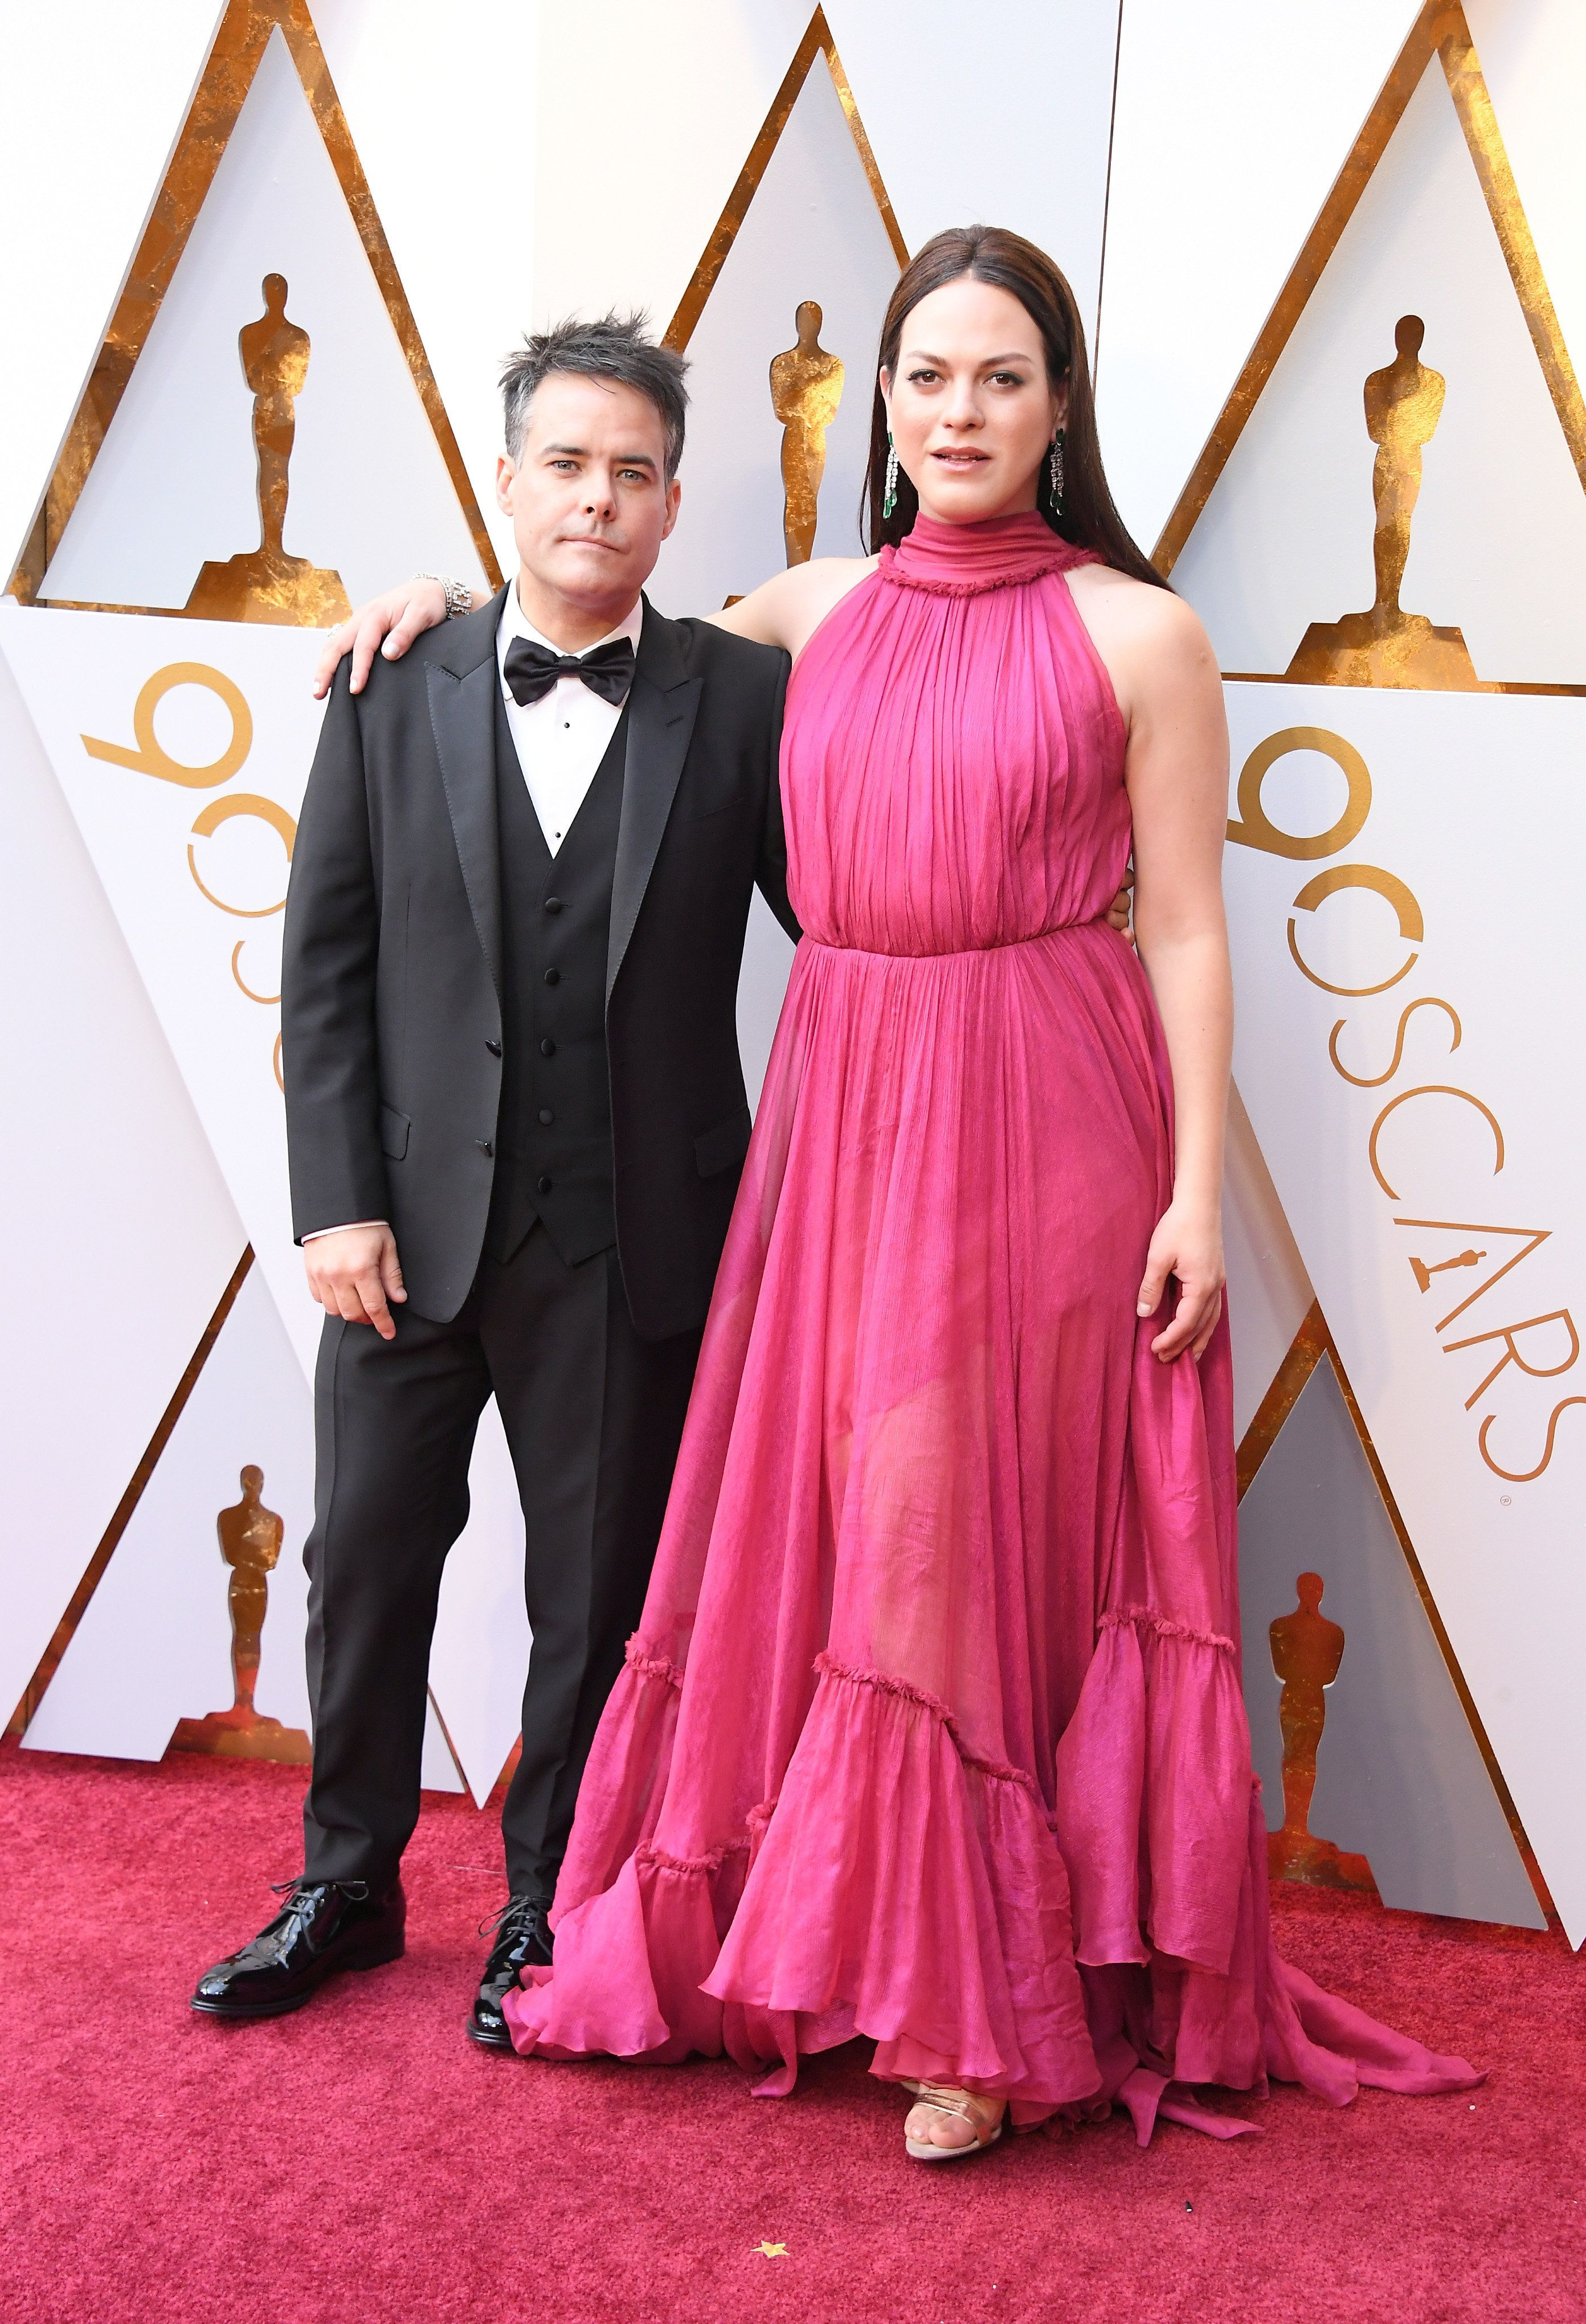 HOLLYWOOD, CA - MARCH 04: Sebastian Lelio and Daniela Vega attend the 90th Annual Academy Awards at Hollywood & Highland Center on March 4, 2018 in Hollywood, California.  (Photo by Steve Granitz/WireImage)